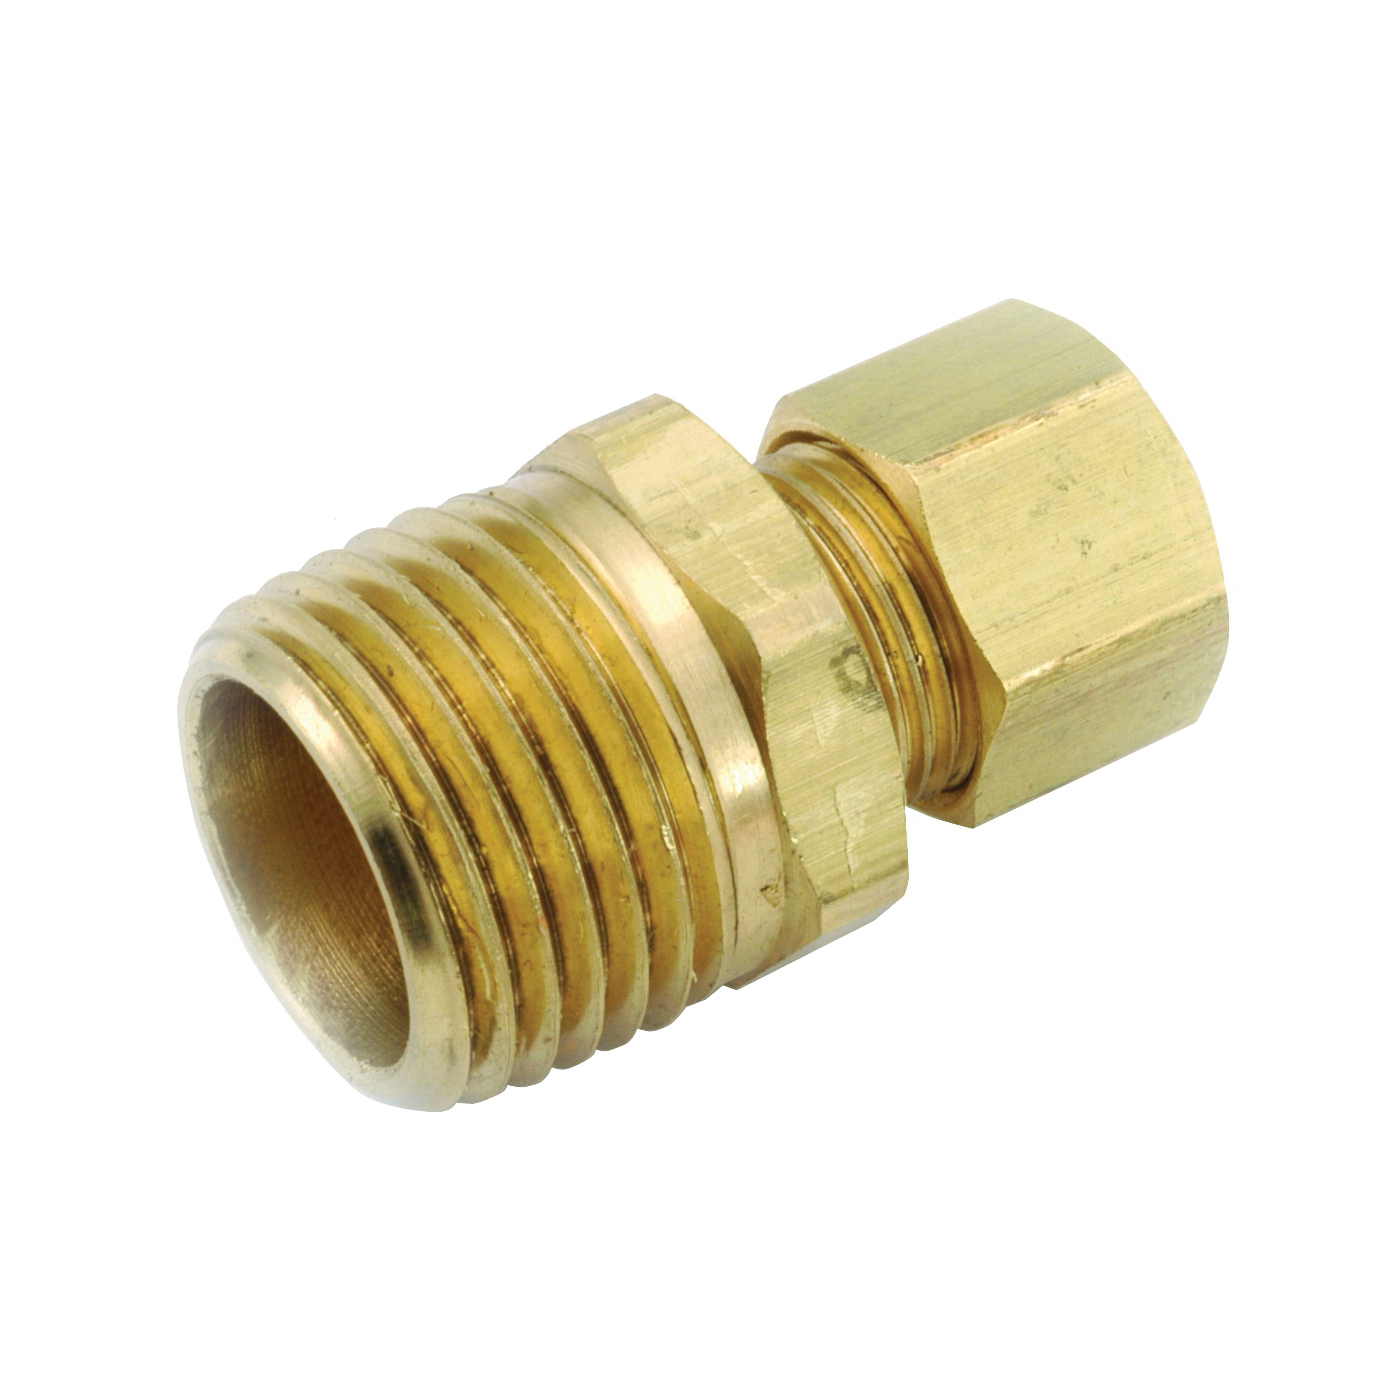 Picture of Anderson Metals 750068-1412 Connector, 7/8 in Compression, 3/4 in Male